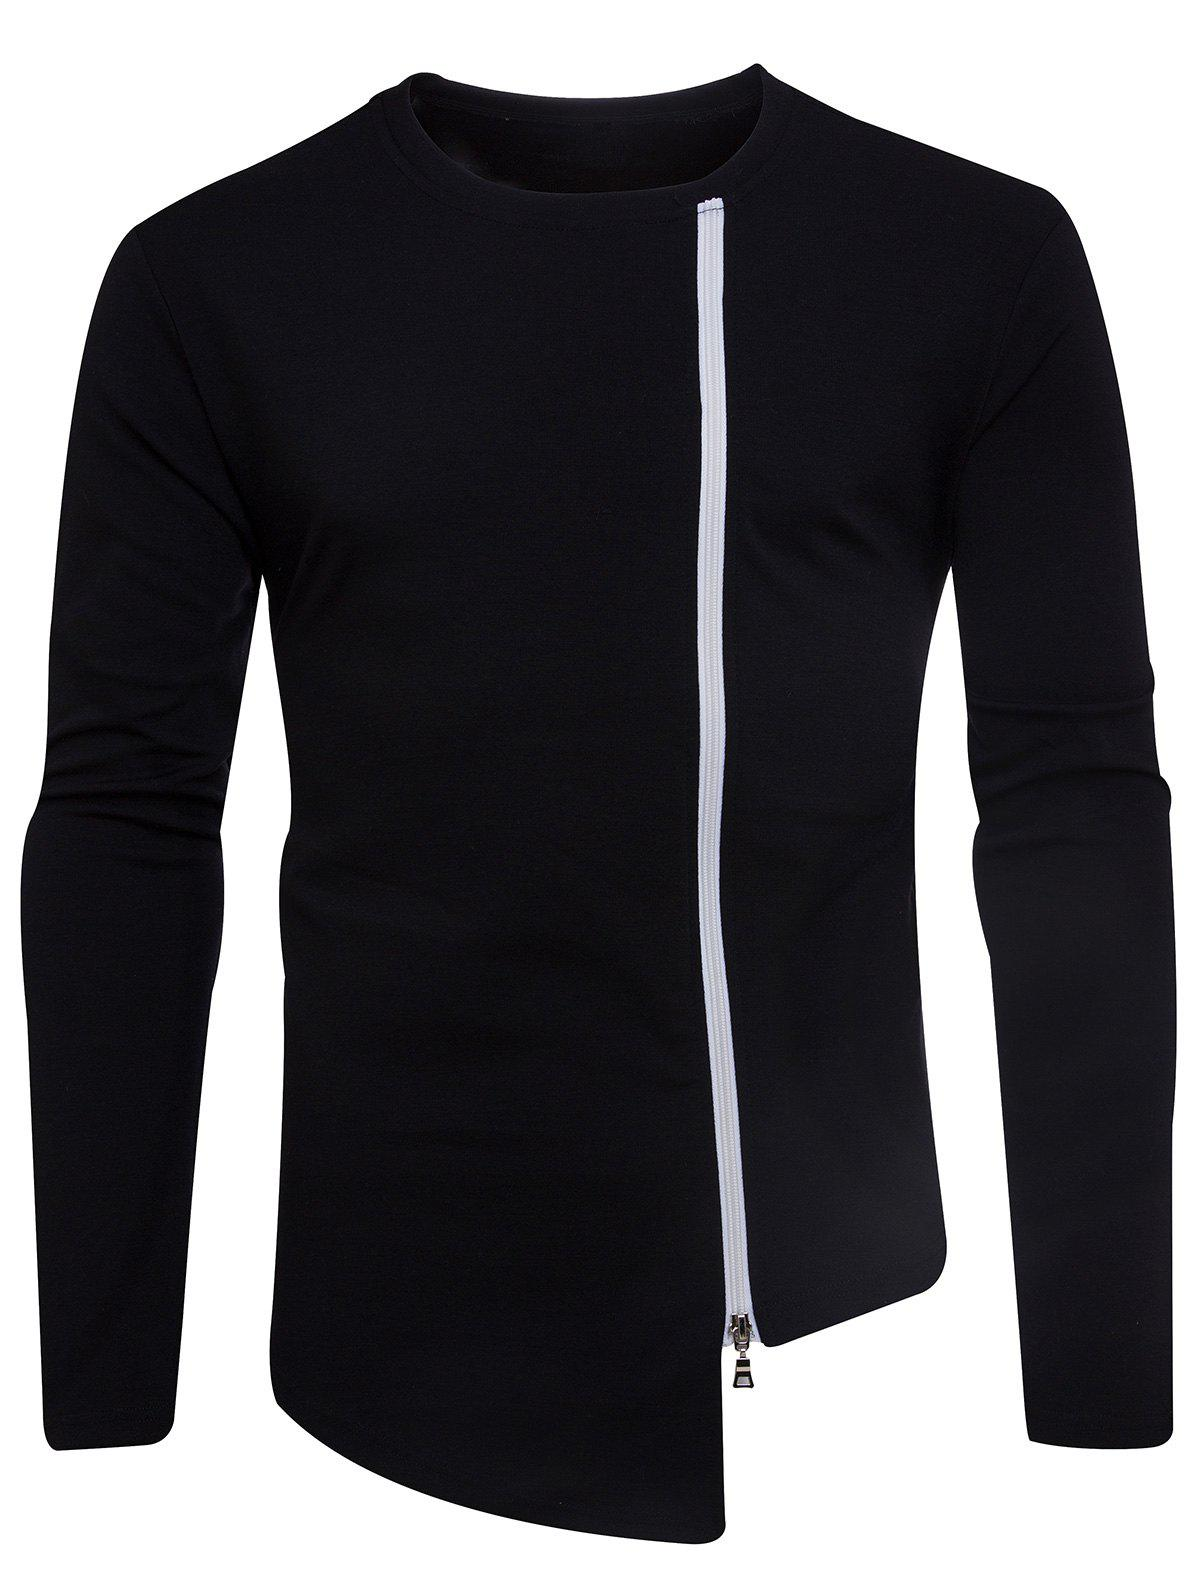 Long Sleeve Oblique Zip Up Asymmetric T-shirt - BLACK L